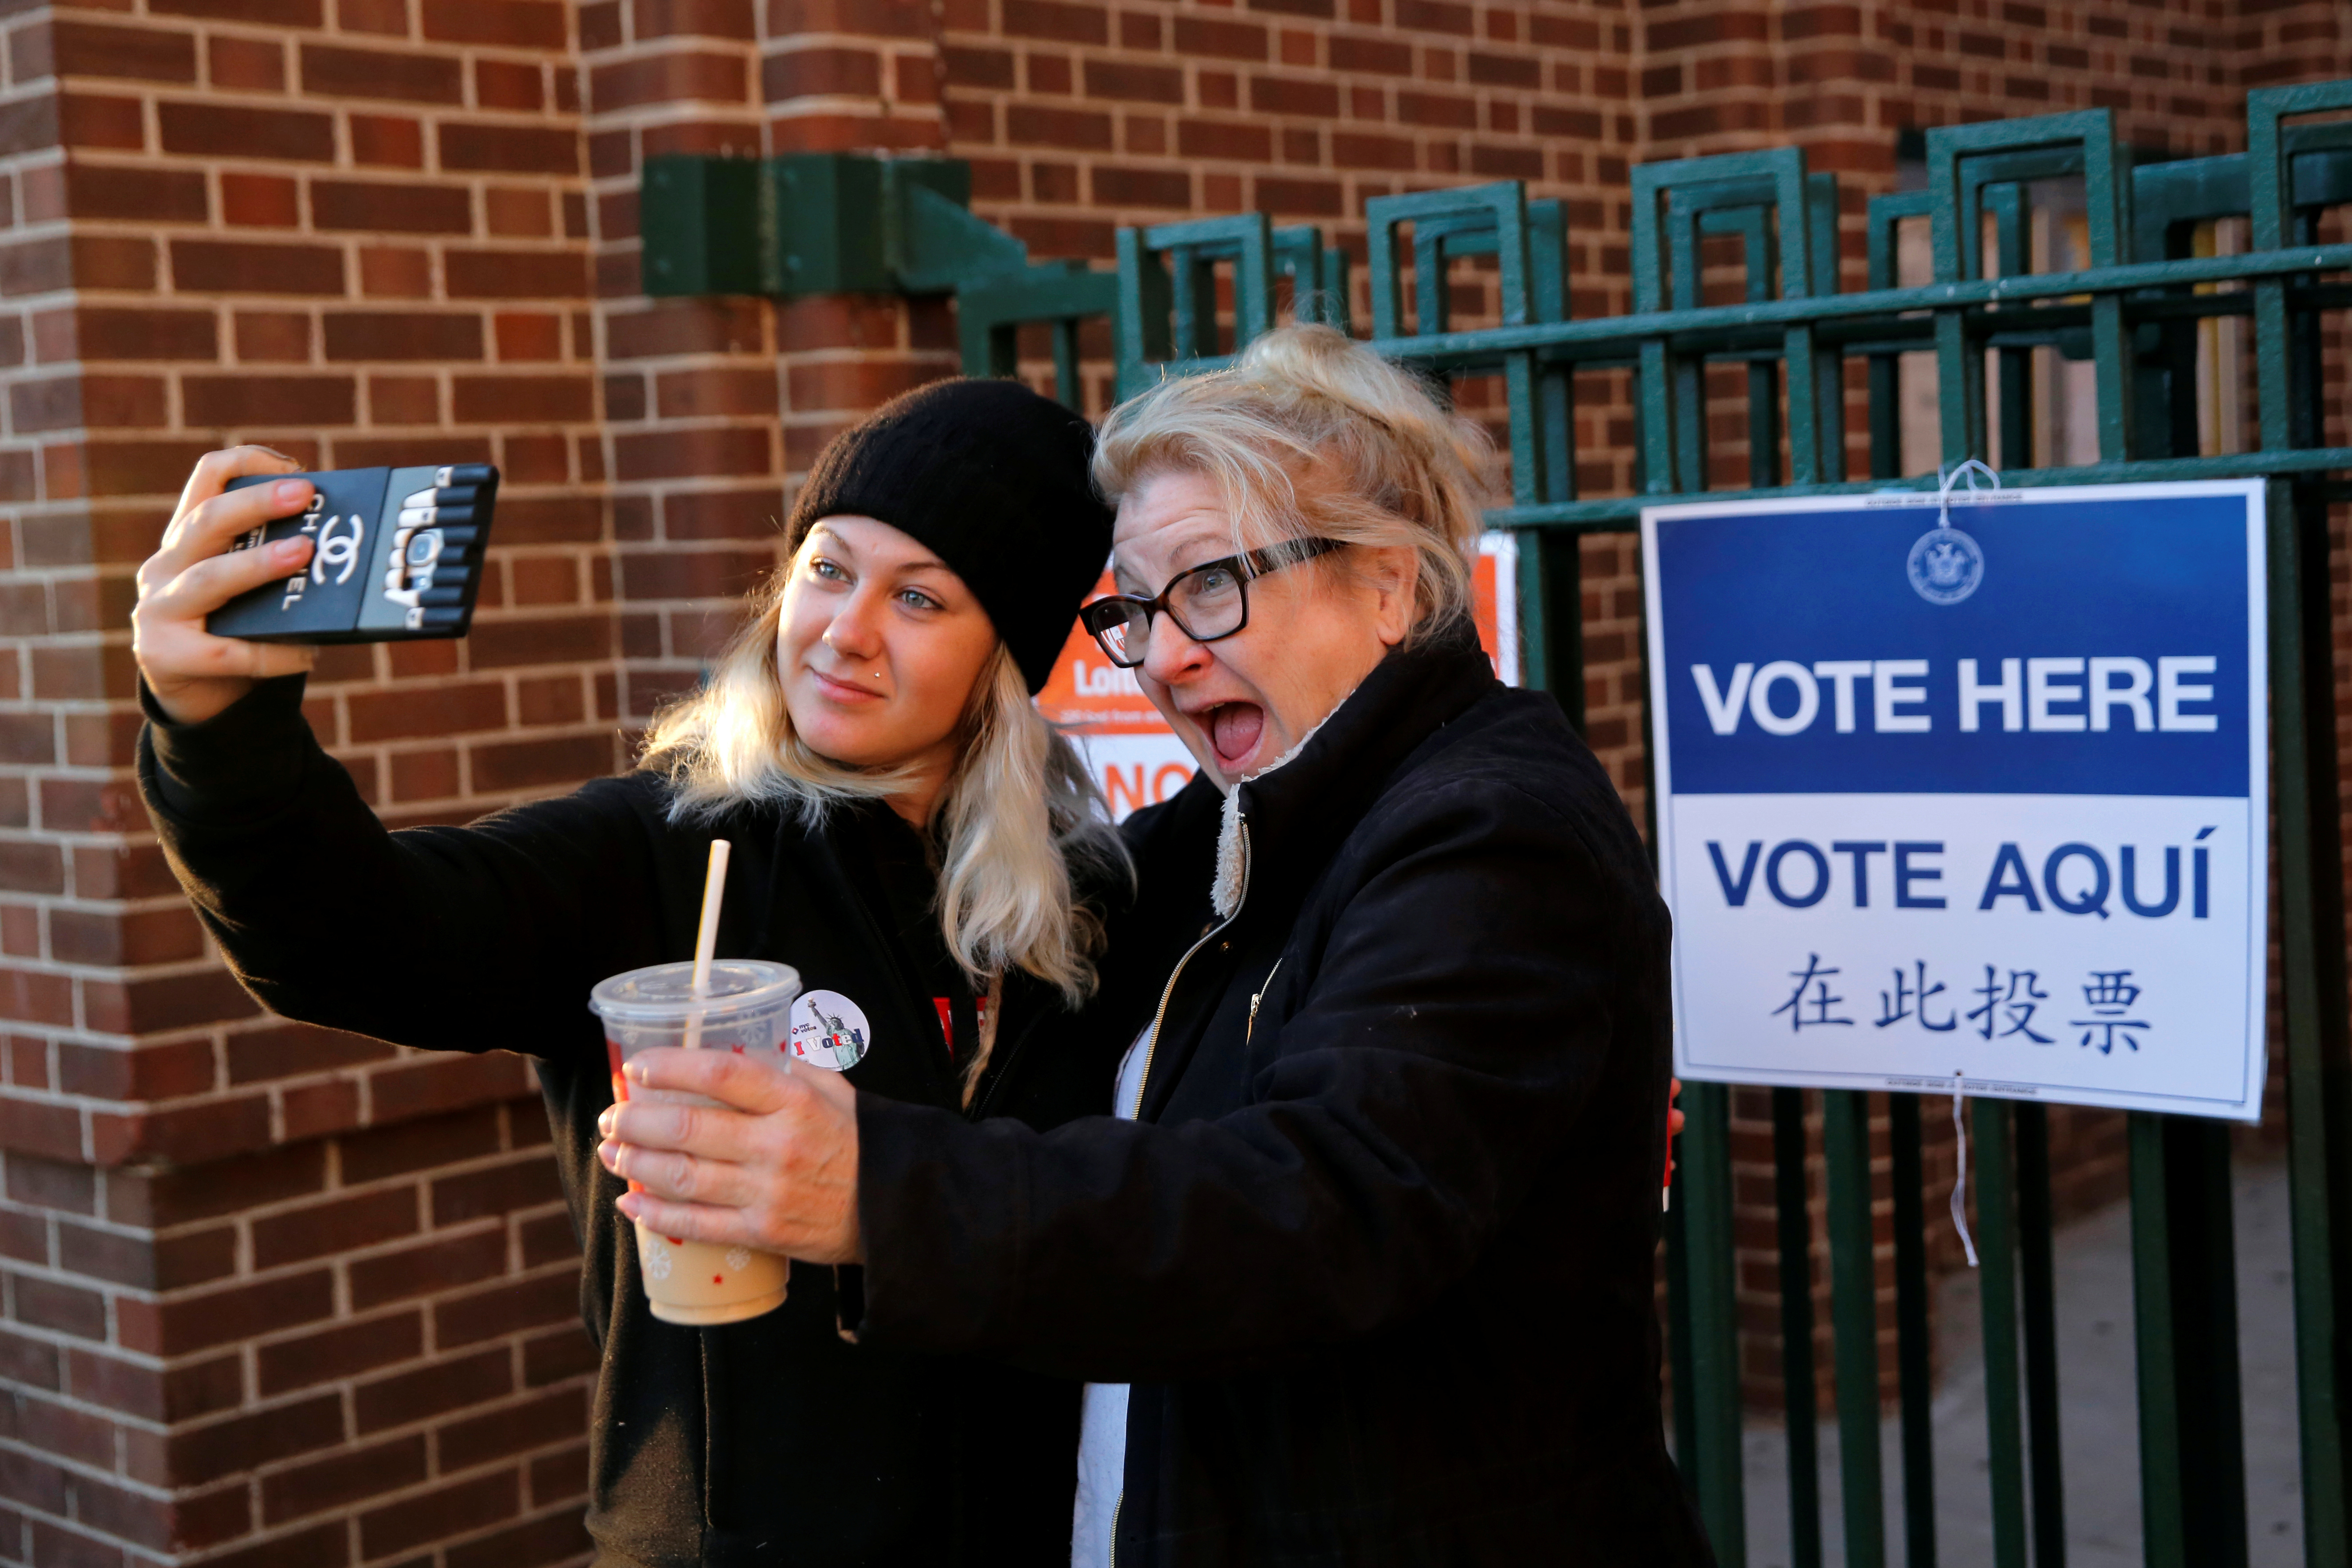 First-time voter Kaeli Askea poses for a selfie with her mother Erin Collins-Askea after voting at the James Weldon Johnson school in East Harlem, New York City.